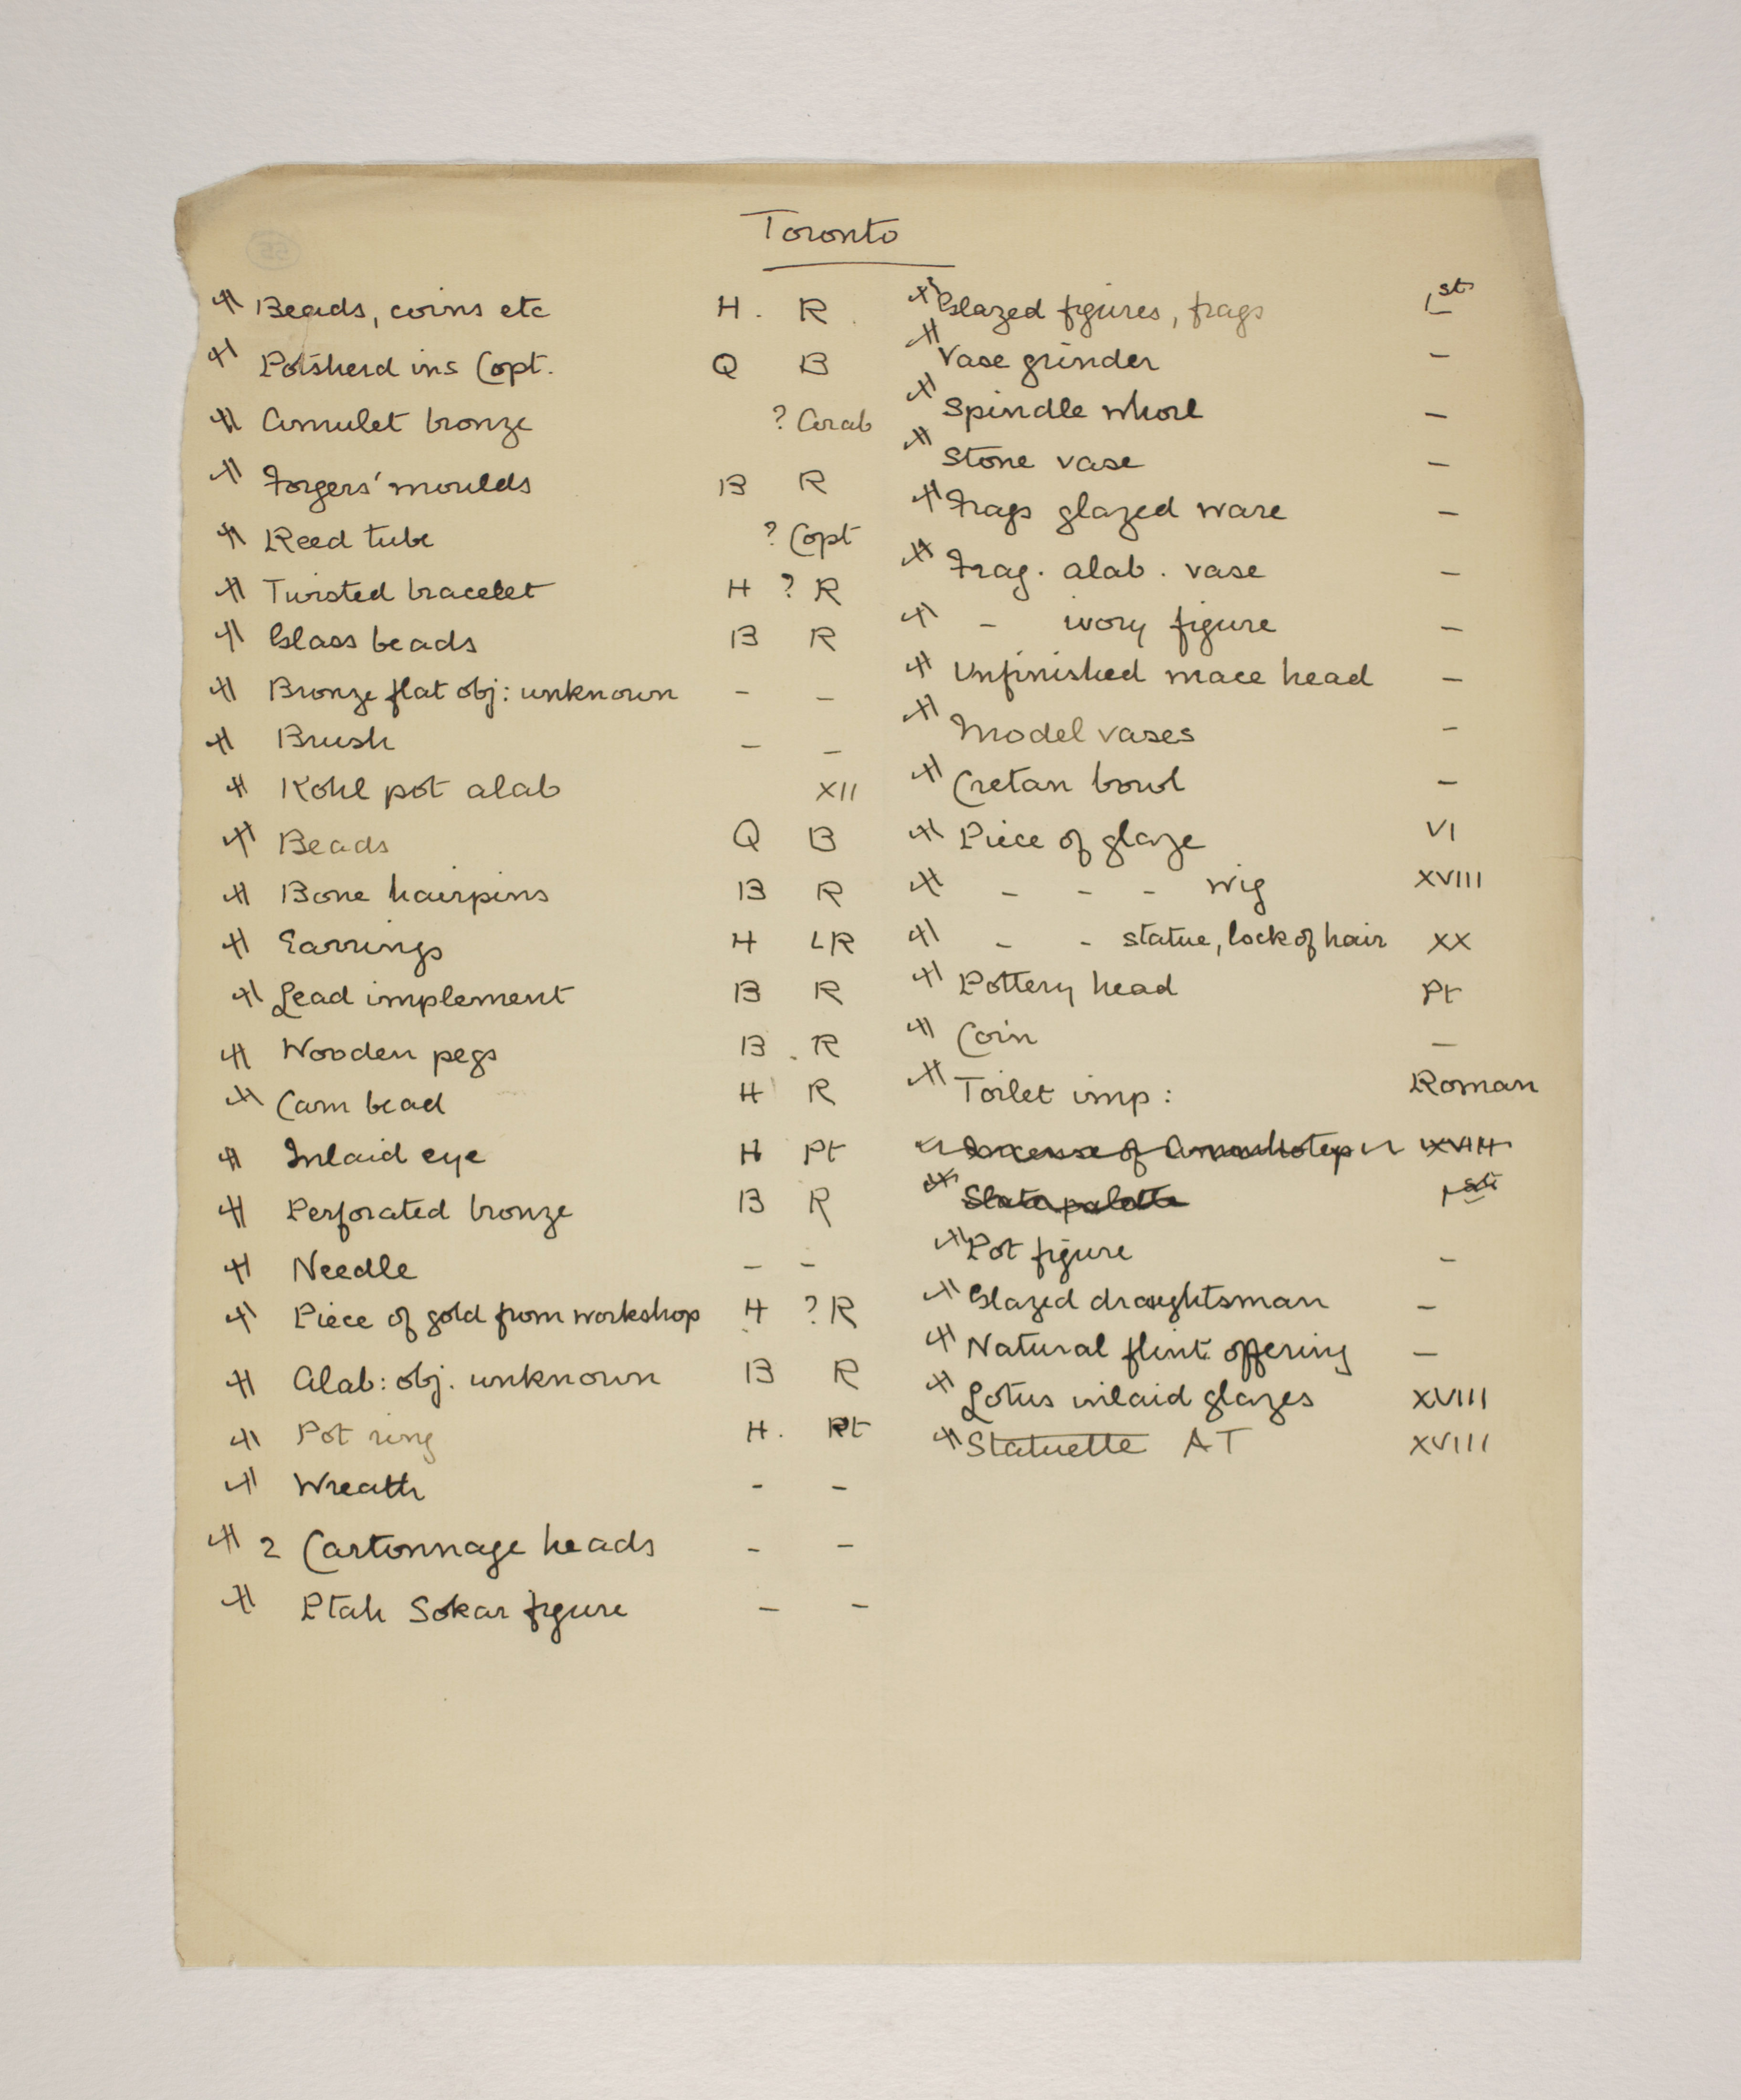 1902-03 Abydos Individual institution list  PMA/WFP1/D/11/55